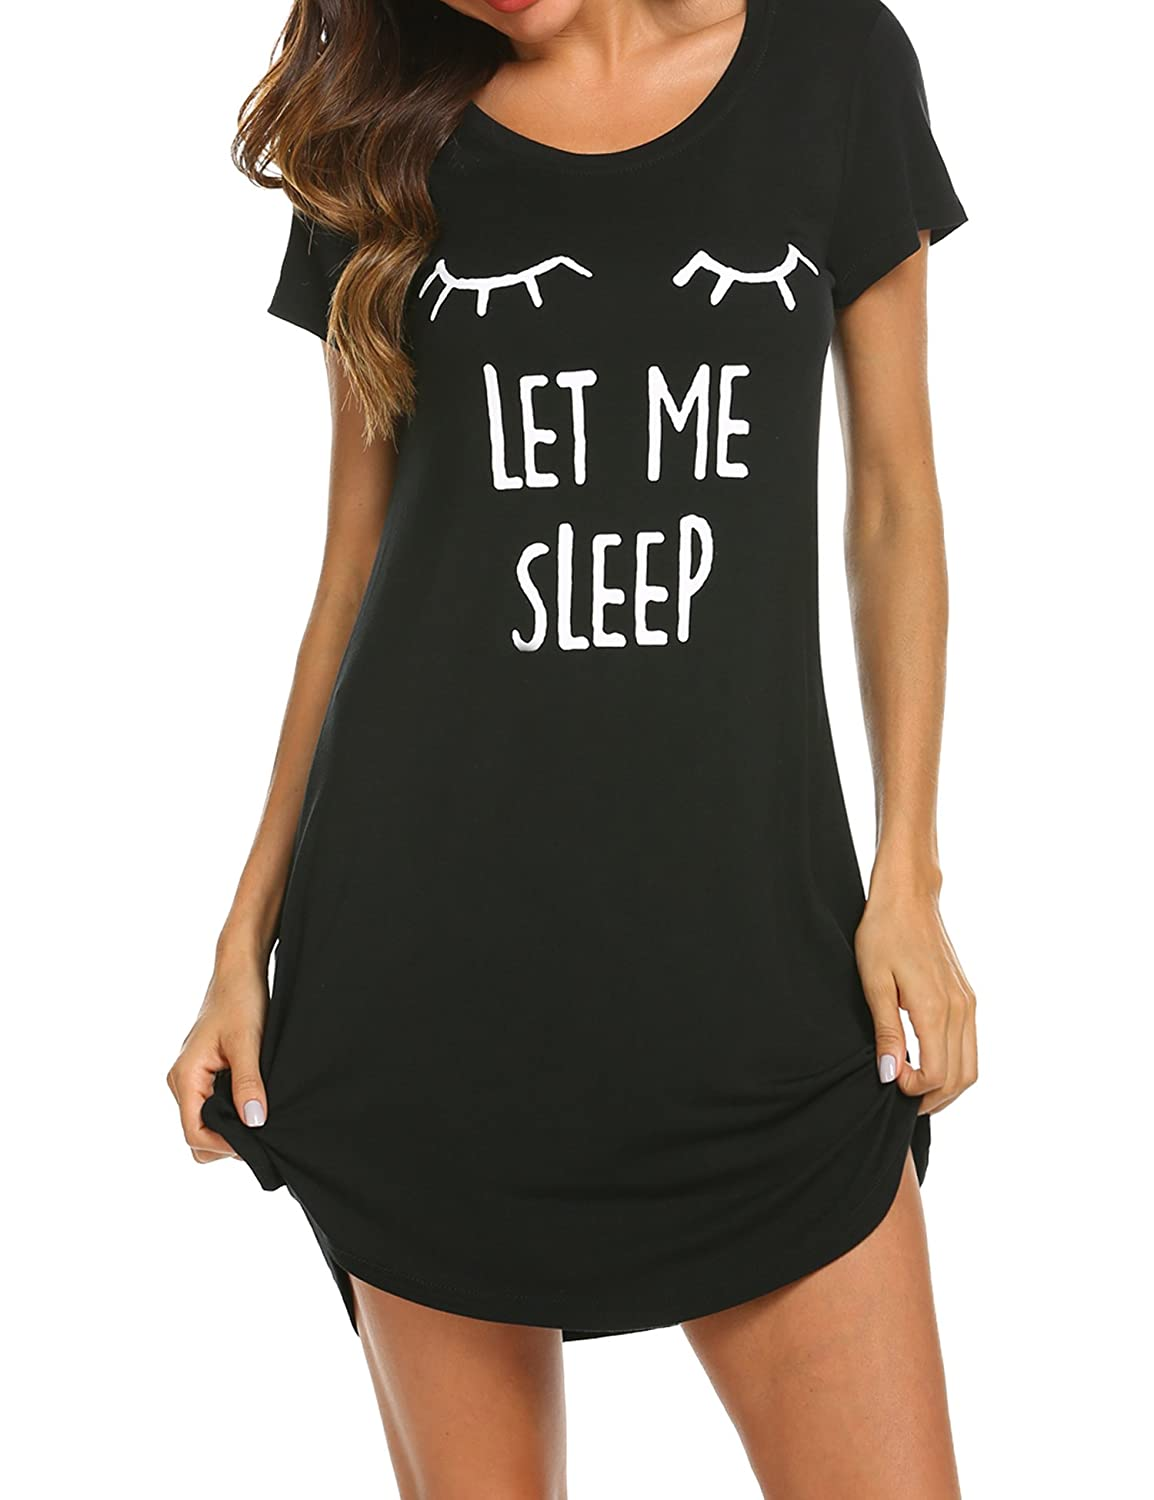 HOTOUCH Sleepwear Women s Nightgown Cotton Sleep Shirt Printed Short Sleeve  Scoopneck Sleep Tee Nightshirt S-XXL at Amazon Women s Clothing store  aed69a0a5